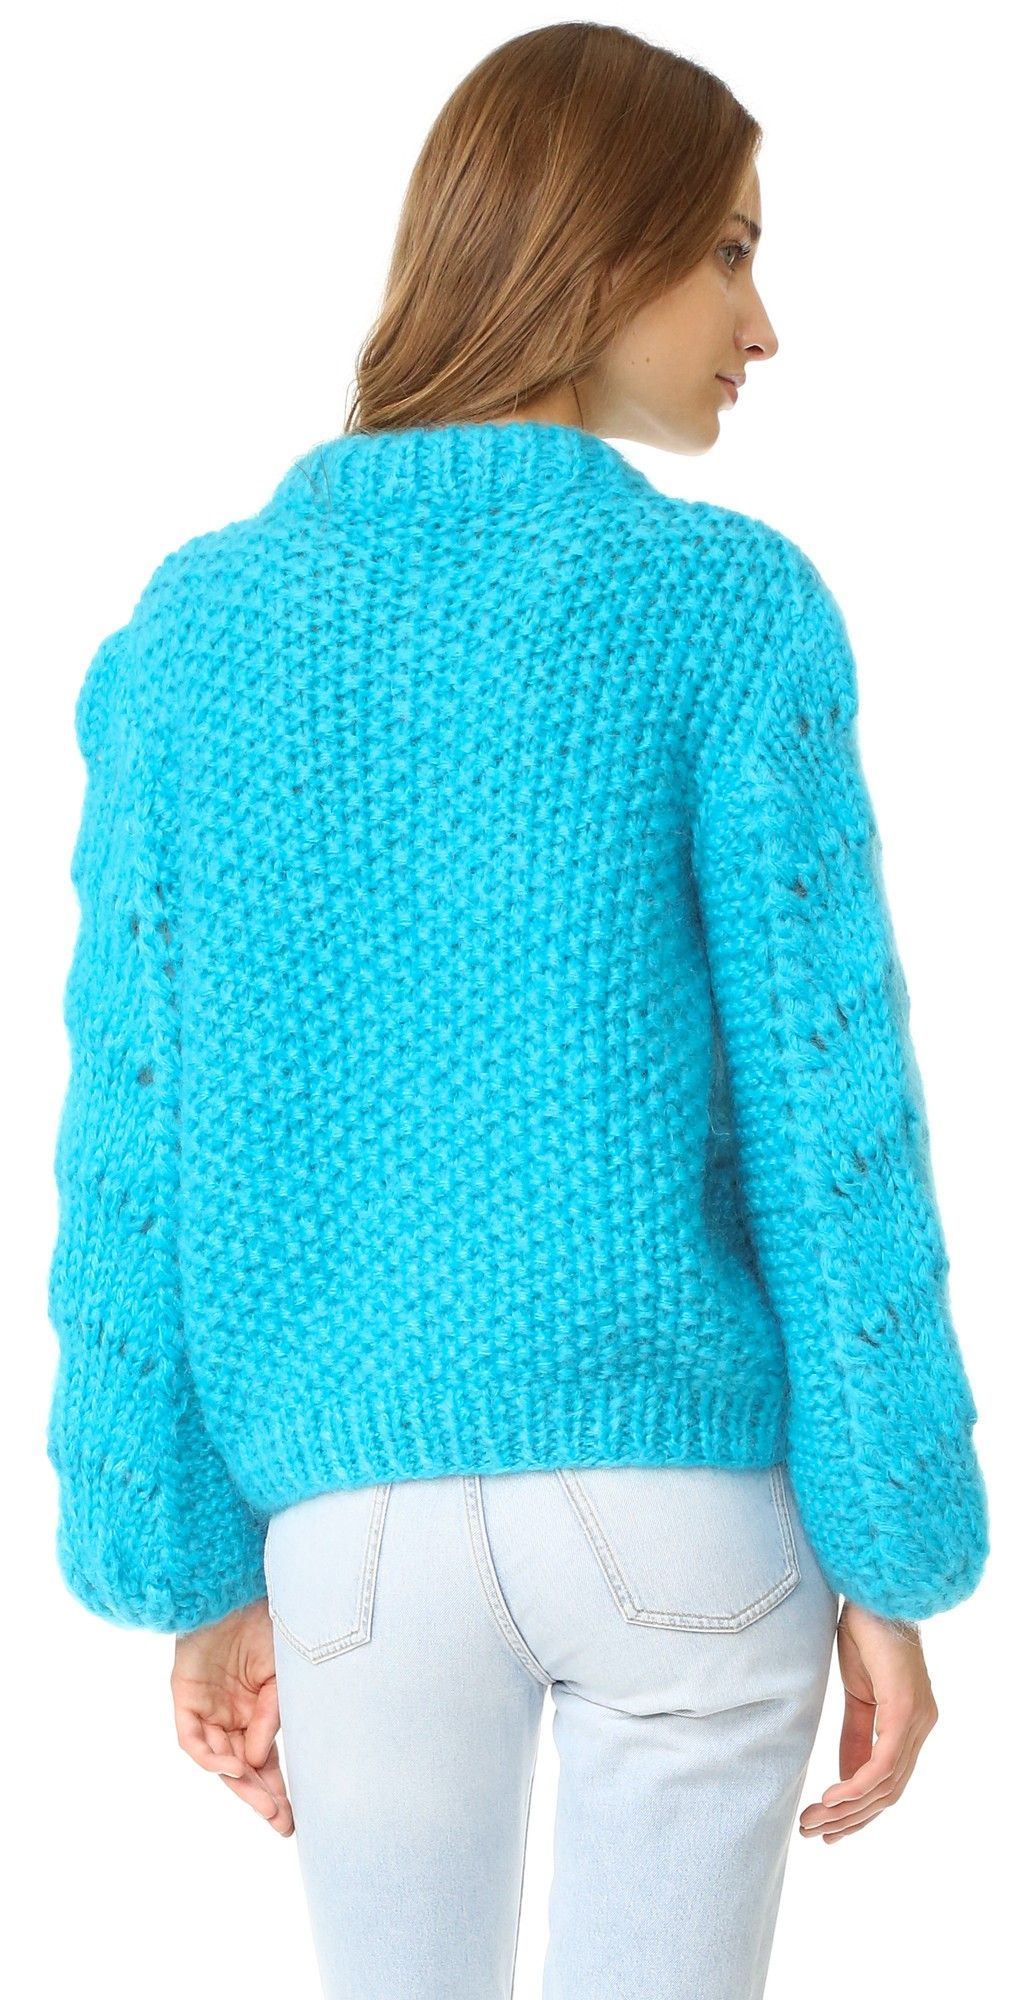 Ganni The Julliard Mohair Sweater | 15% off 1st app order use code: 15FORYOU